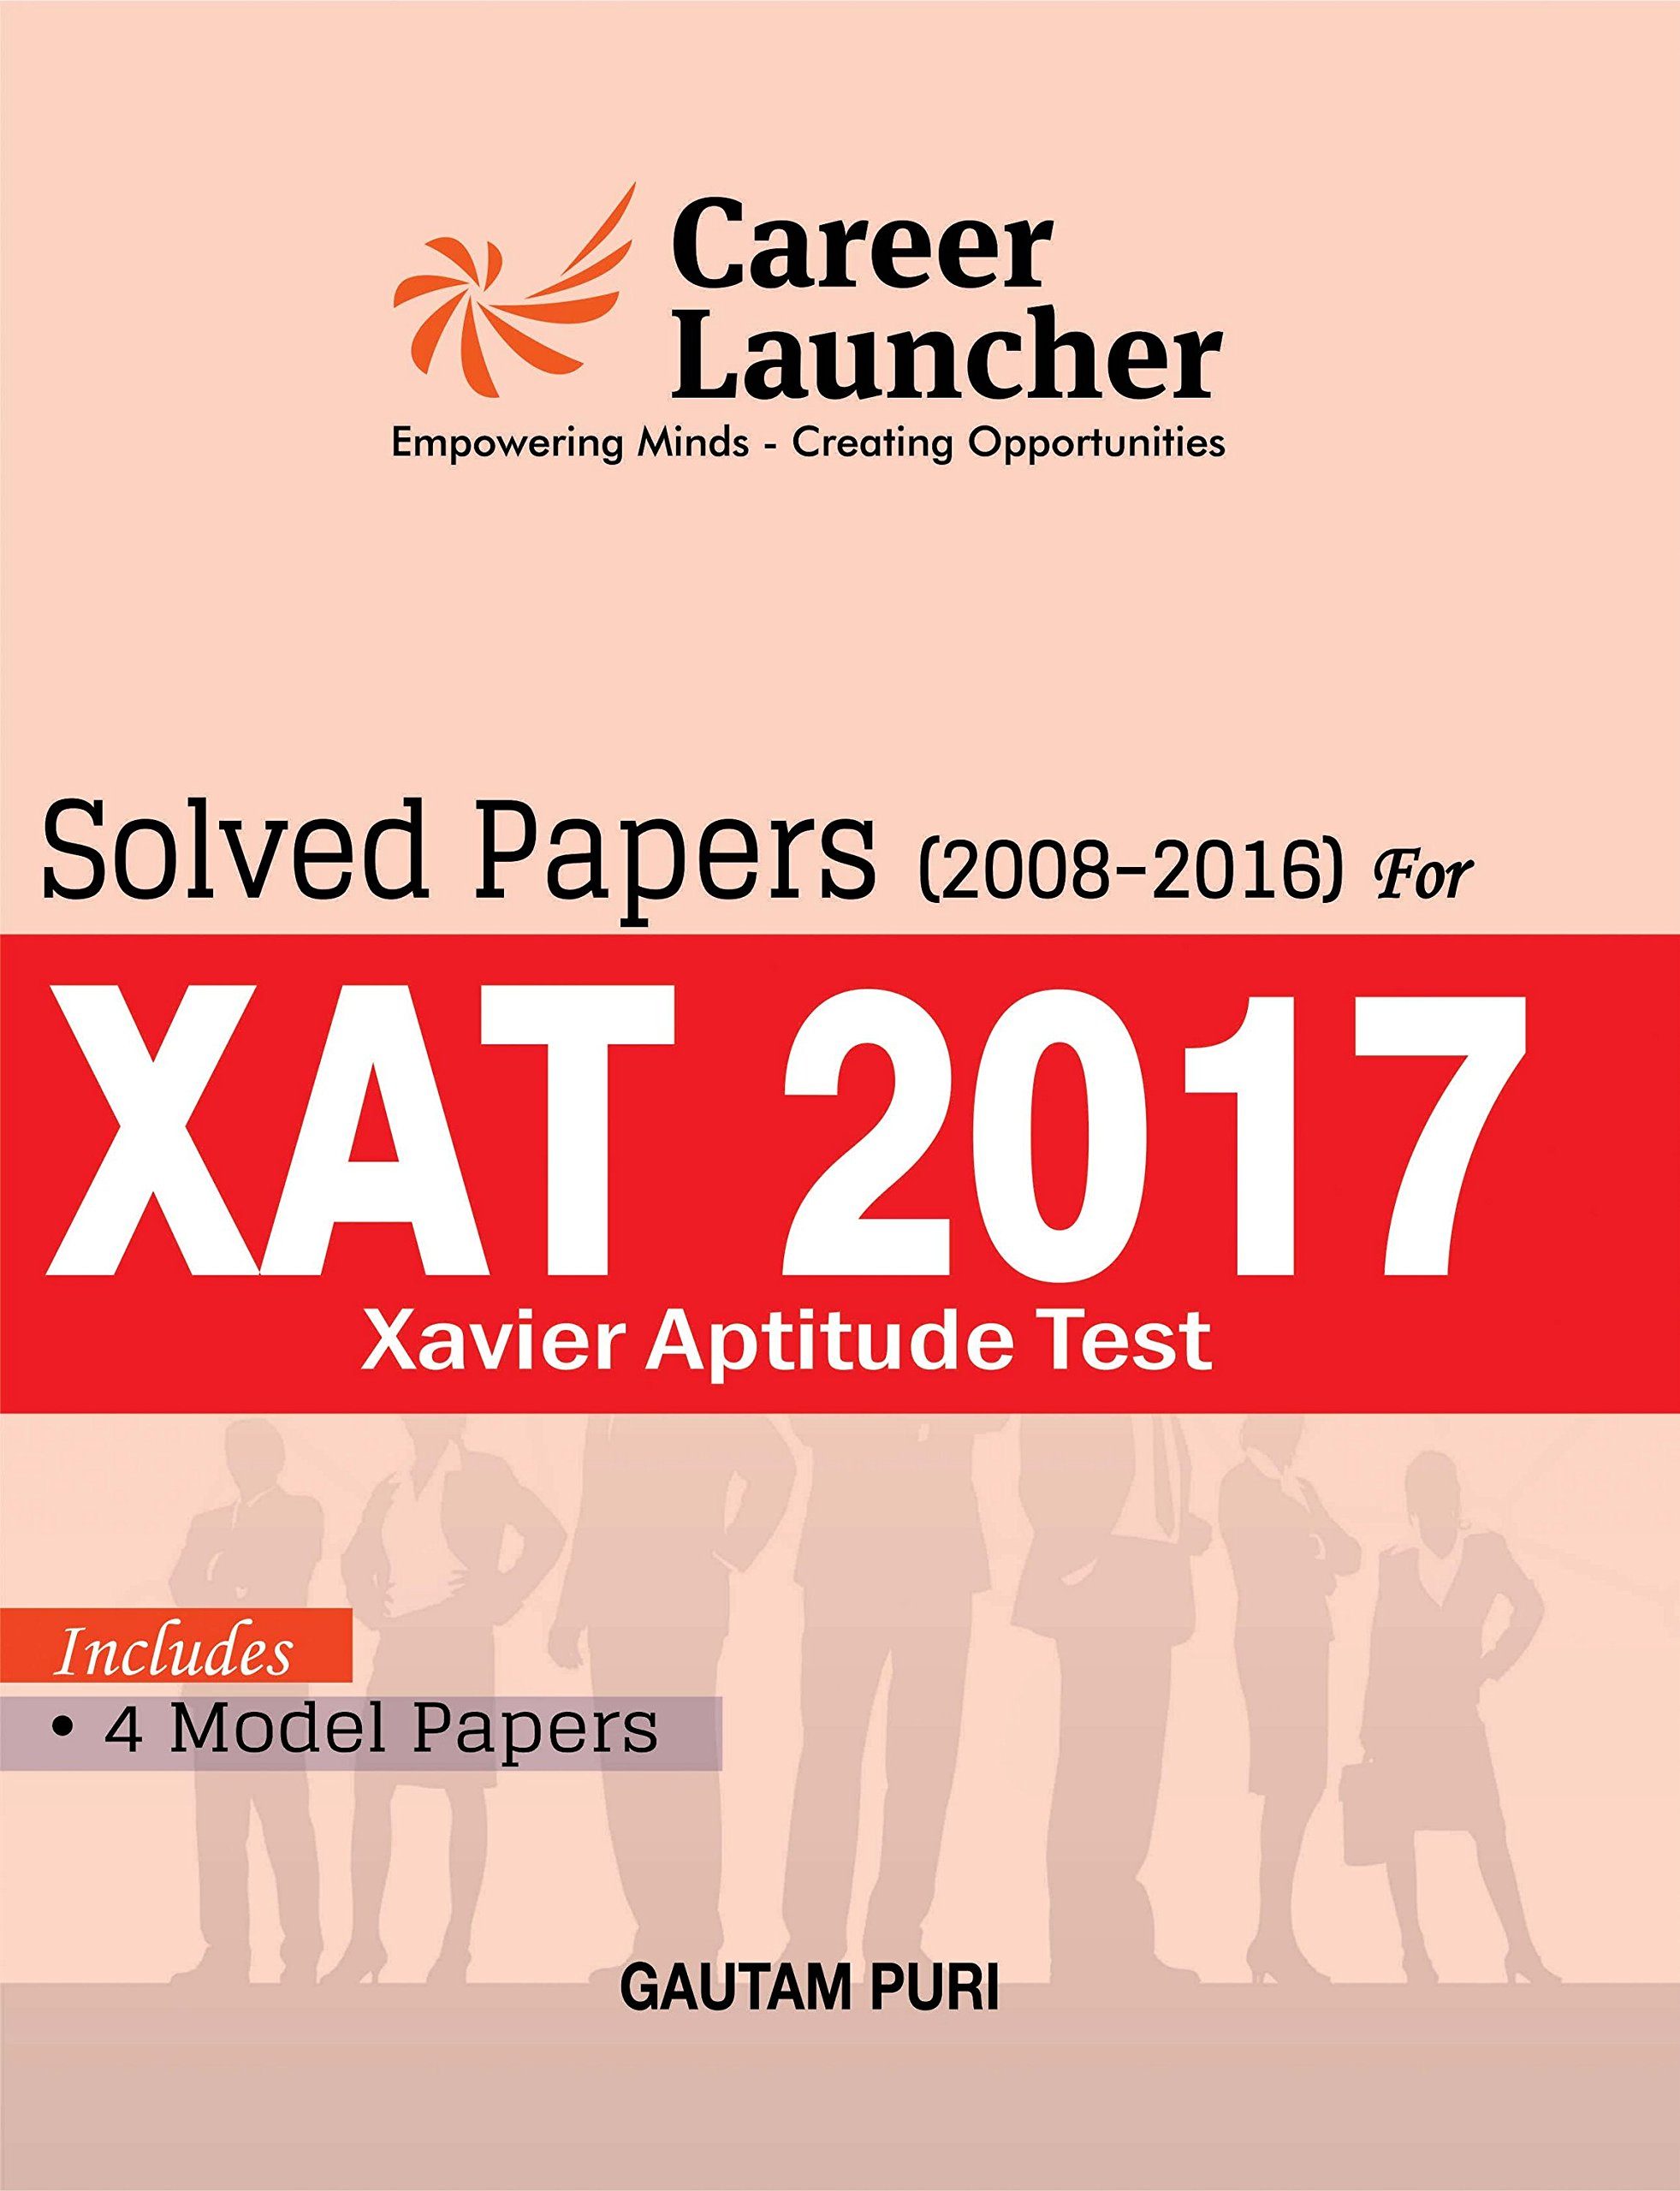 Best Mba Essays Buy Xat Solved Papers  With Full Length Model Papers Essay Writing   Practice Essays Decision Making Book Online At Low Prices In India  Xat   Essays On Violence Against Women also How Do You Write A Compare And Contrast Essay Buy Xat Solved Papers  With Full Length Model Papers Essay  Best Essay Writing Books